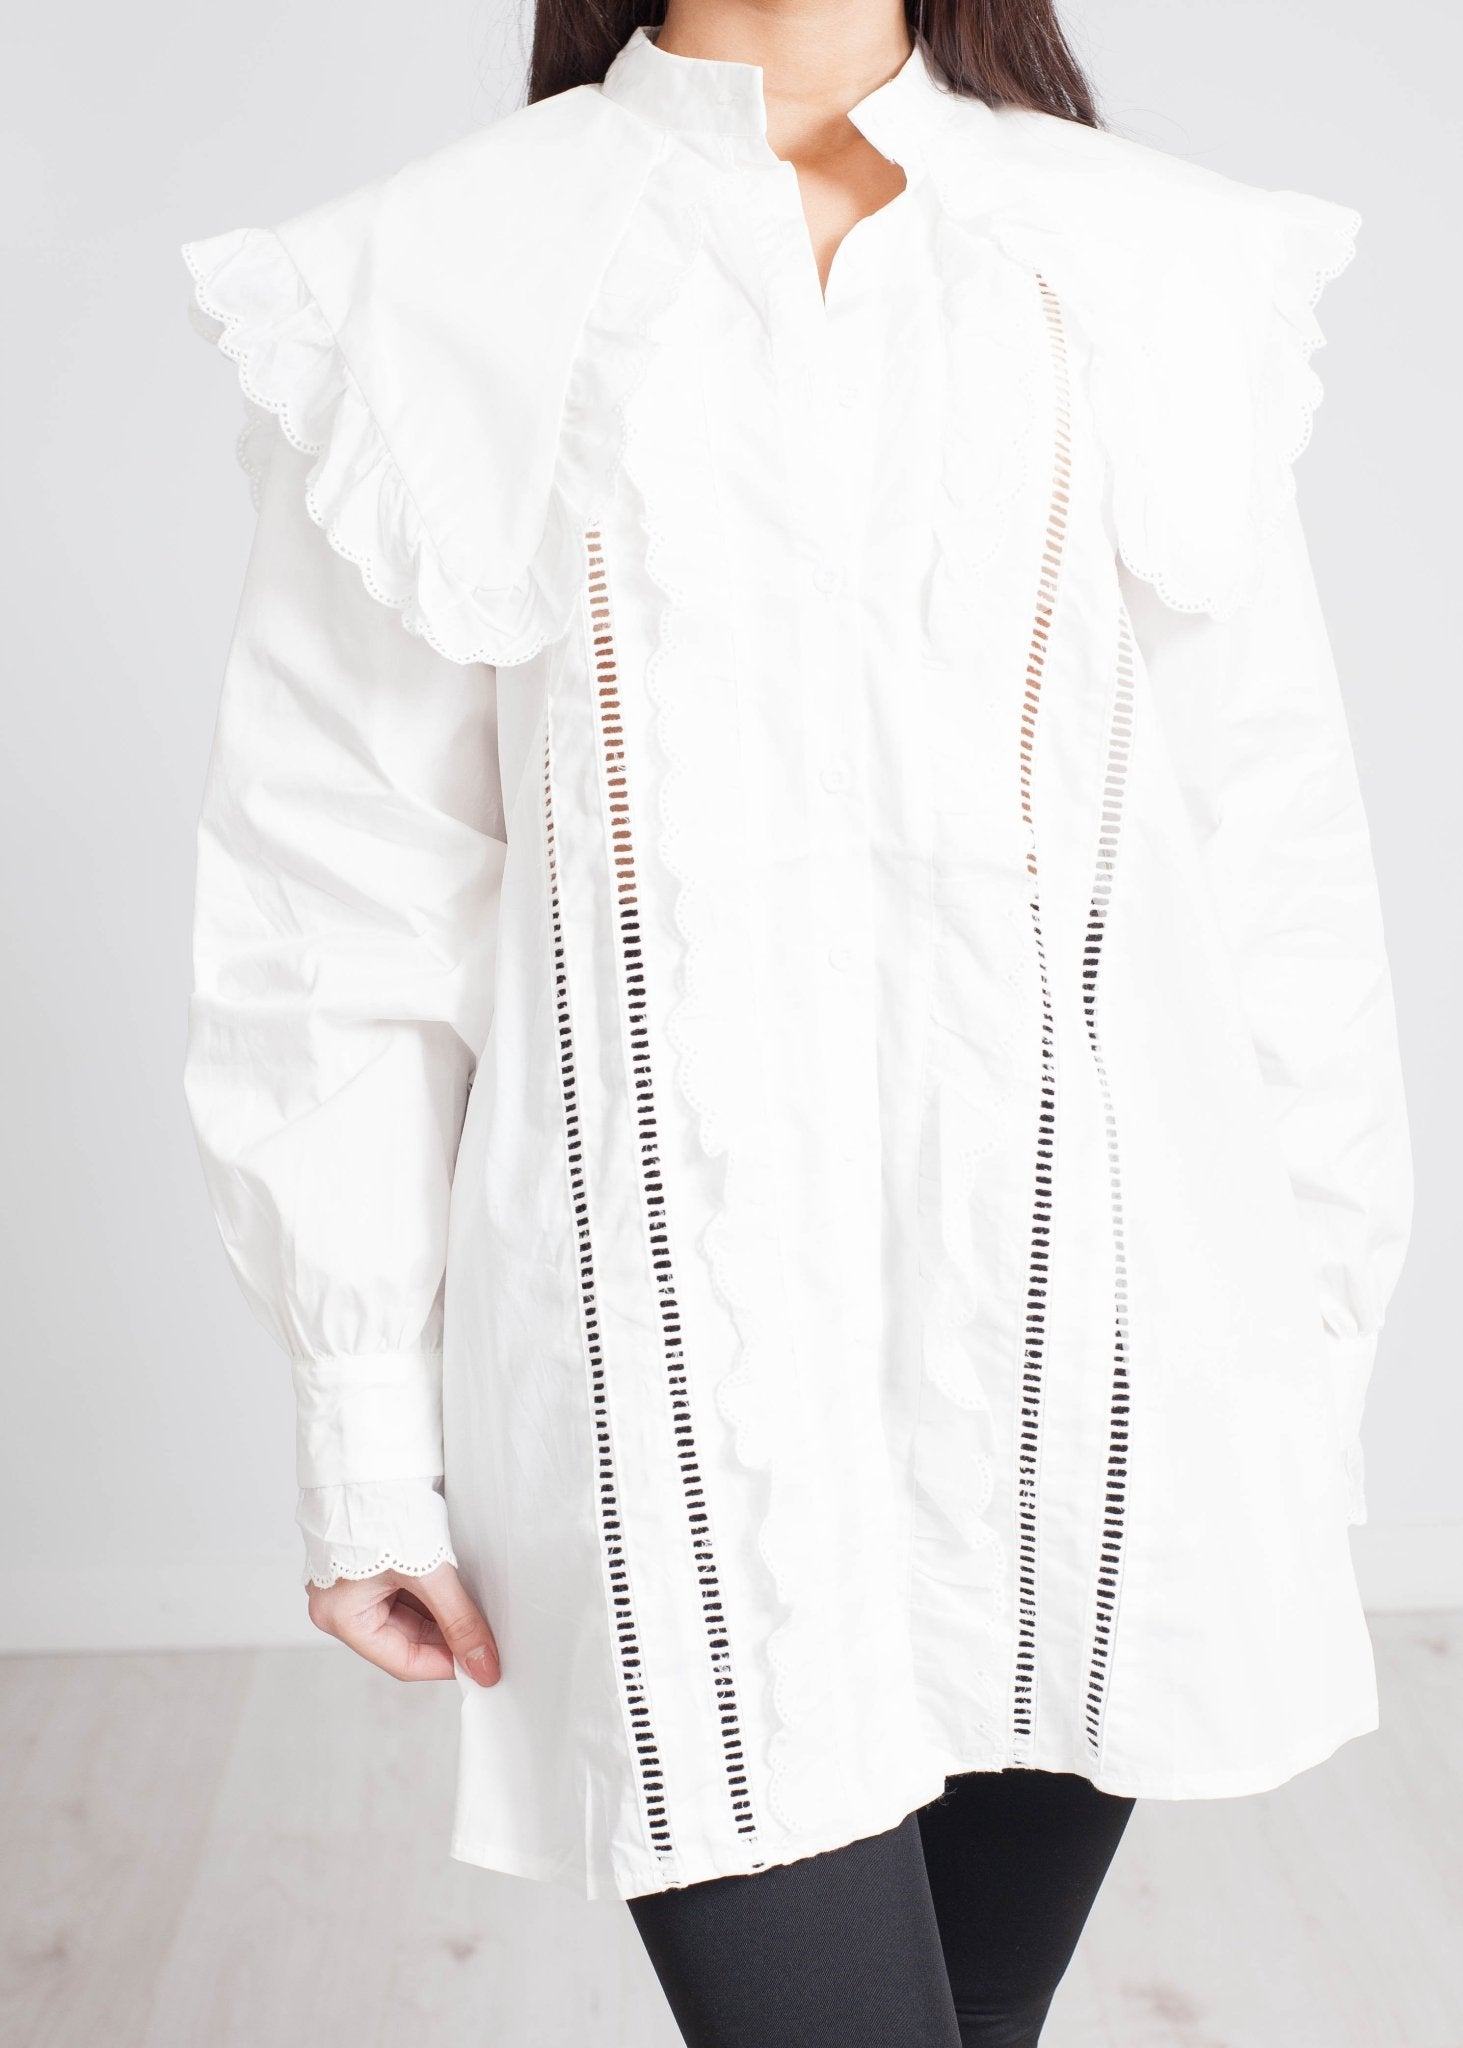 Lucia Frill Blouse In White - The Walk in Wardrobe